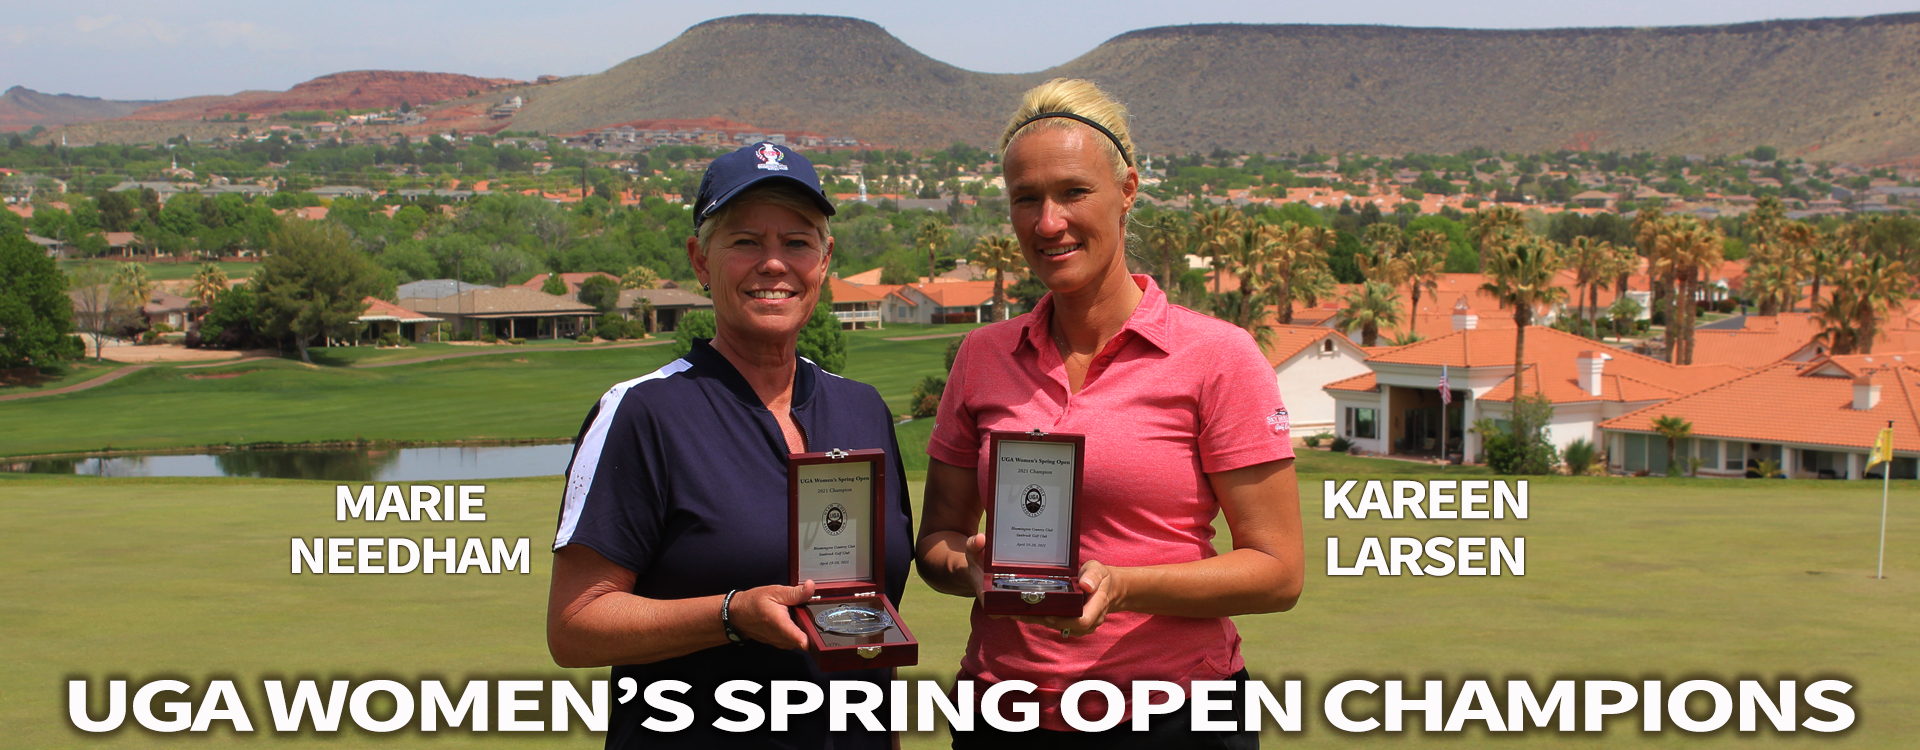 Women's-Spring-Open-Champions